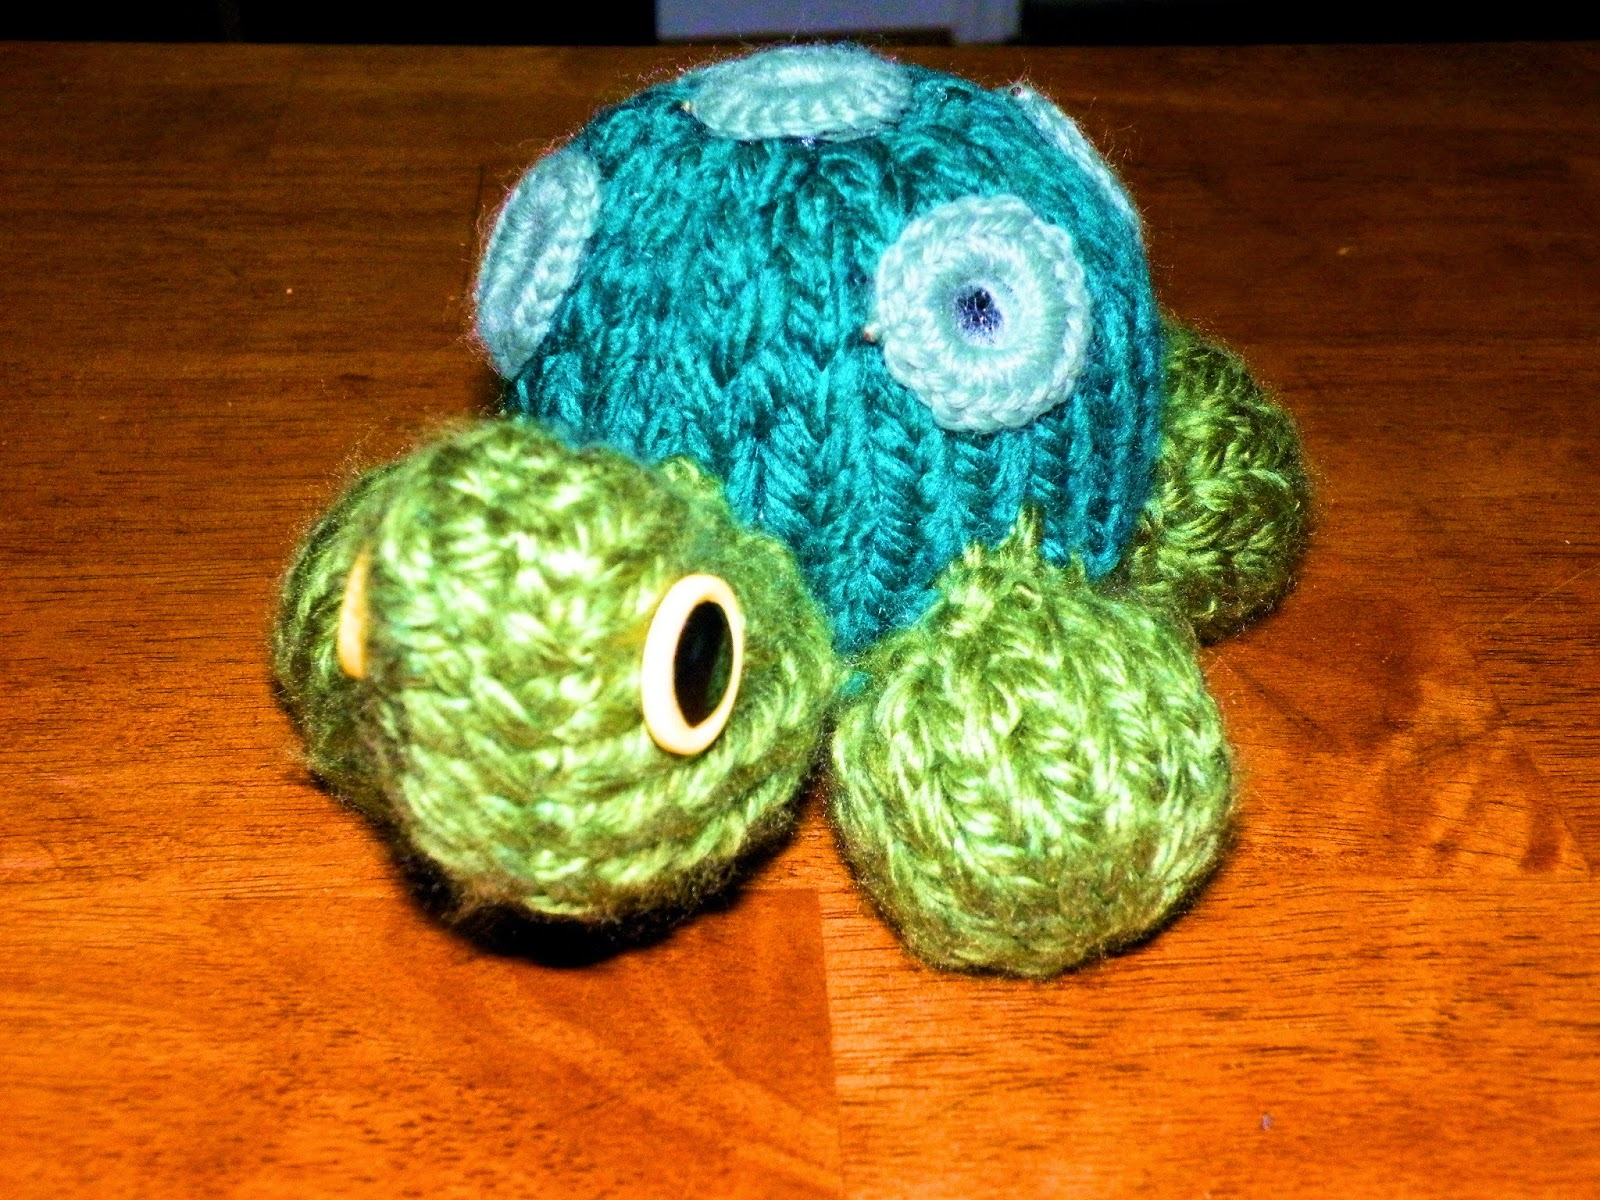 Turtle Stuffed Animal Pattern - LoomaHat.com